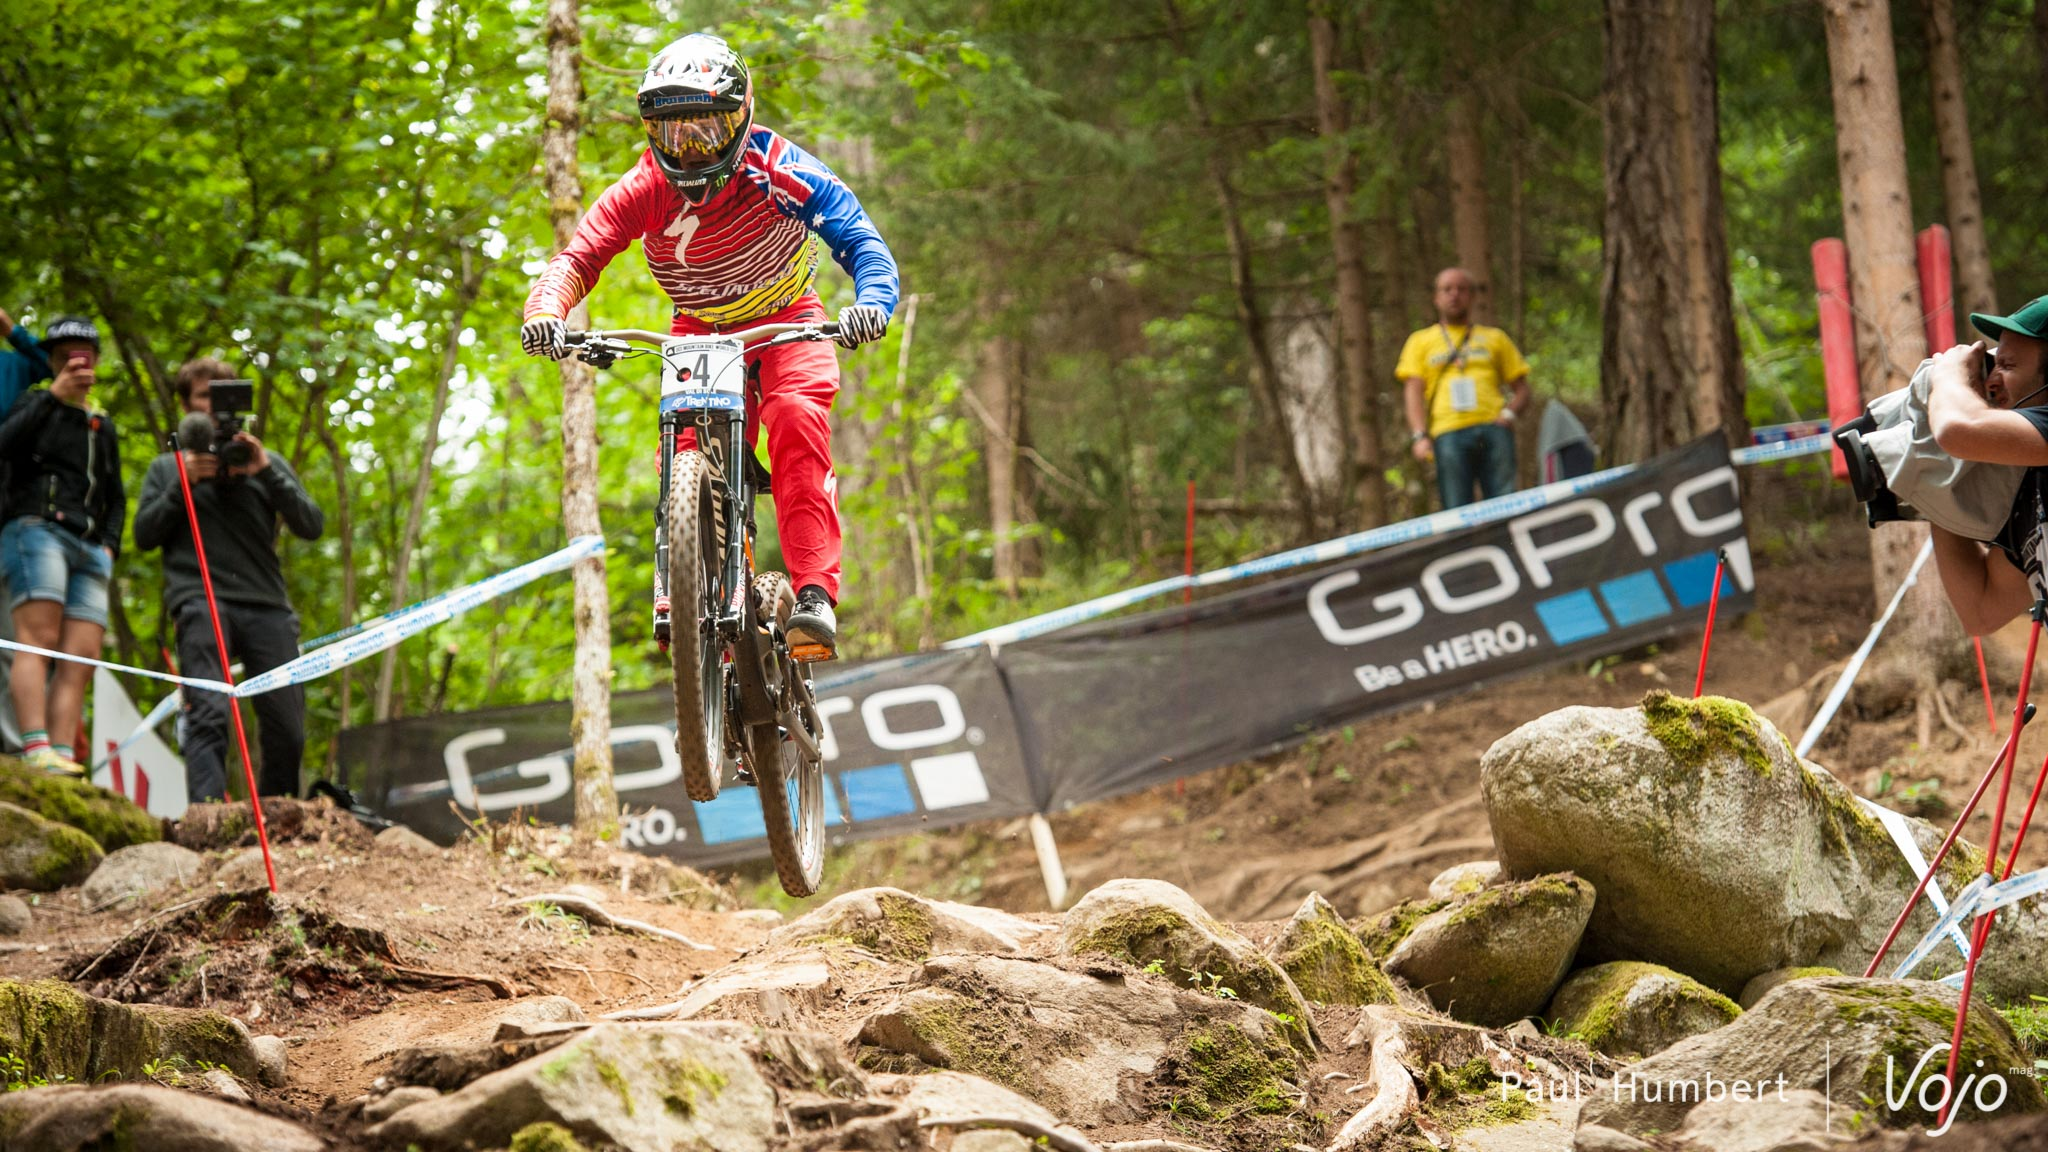 WC-valdisole-qualifications-vojo-paul-humbert-8